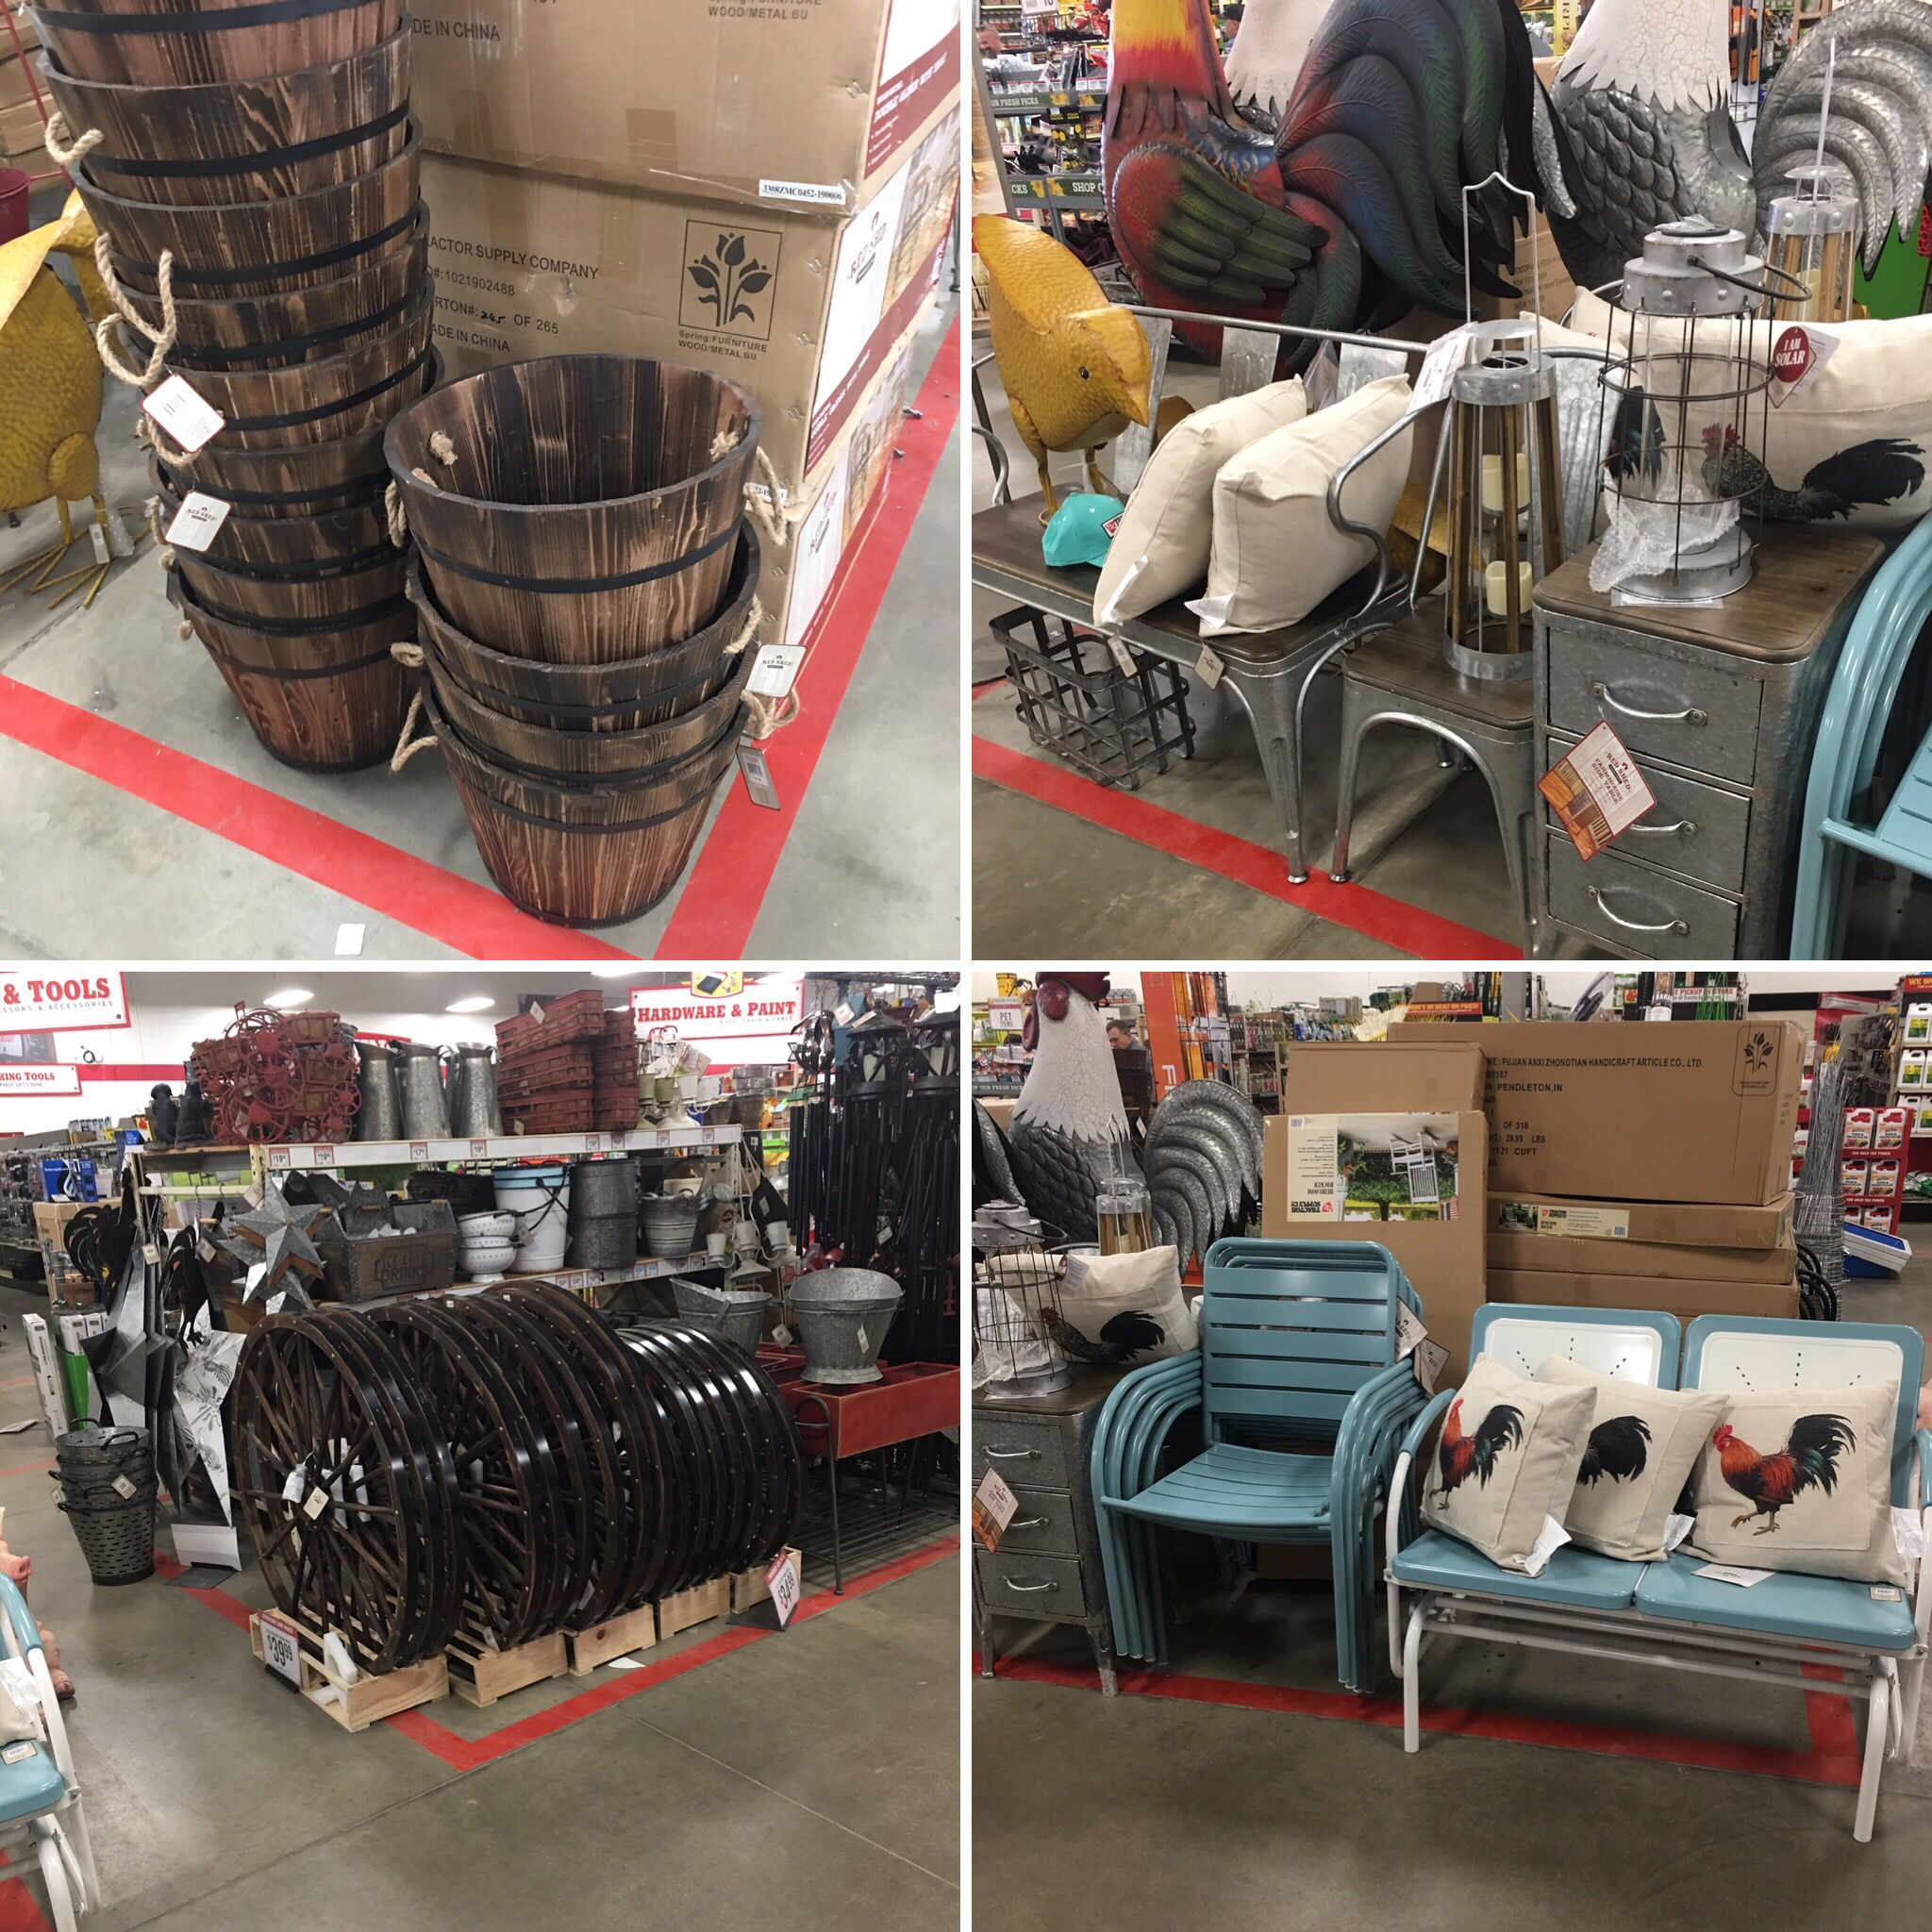 Rustic outter decor   Decor, Tractor supplies, Rustic